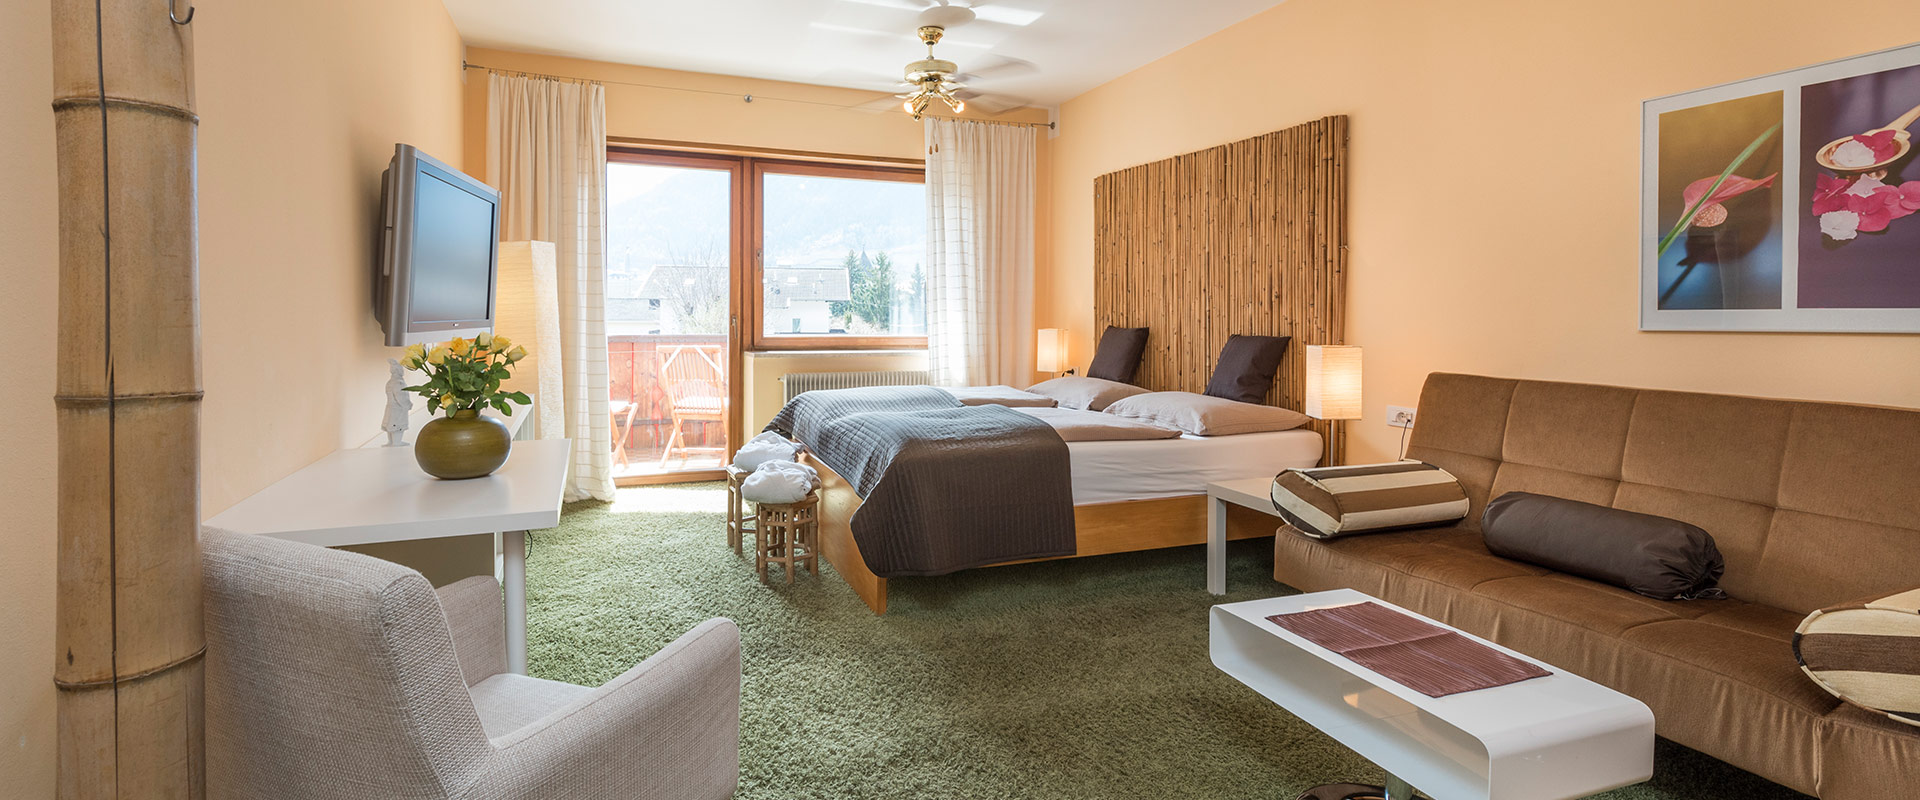 Rates And Offers At Hotel Bamboo Goldrain Venosta Valley